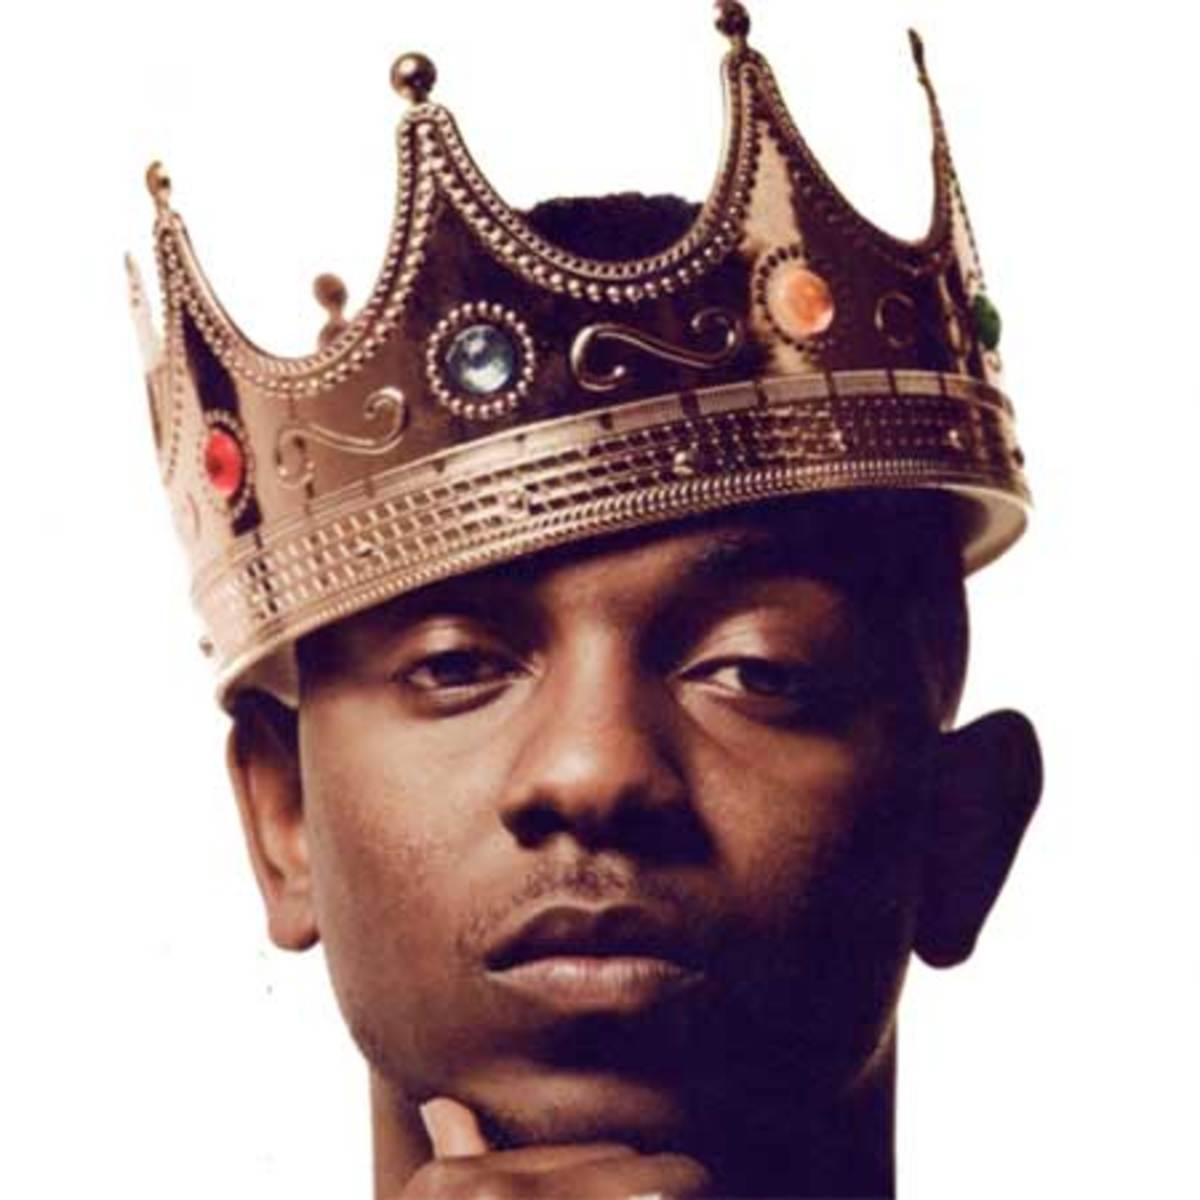 Who Could Beat Kendrick Lamar in a Battle  DJBooth